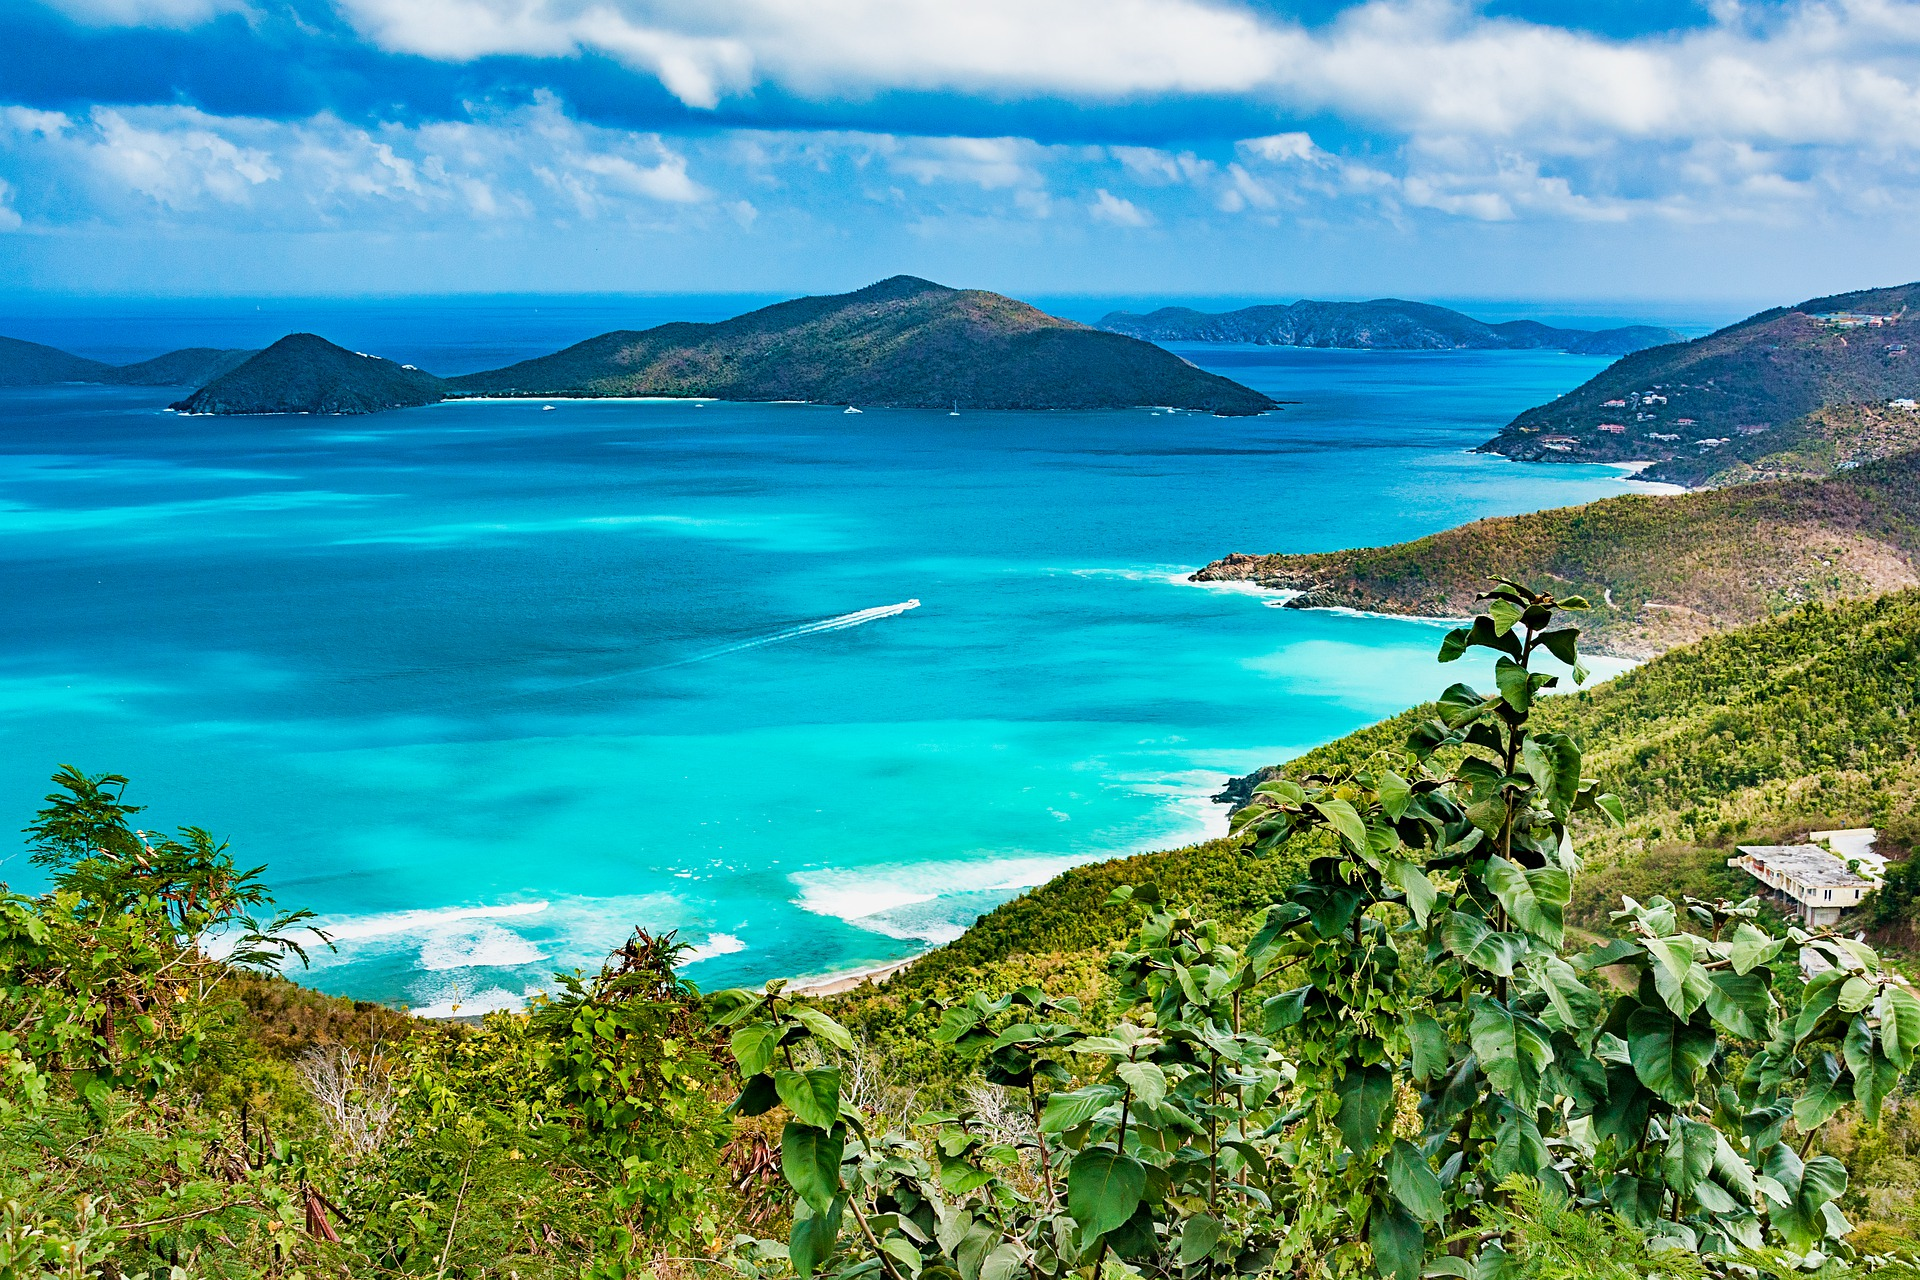 aerial photo of the British Virgin Islands with turquoise waters and mountains